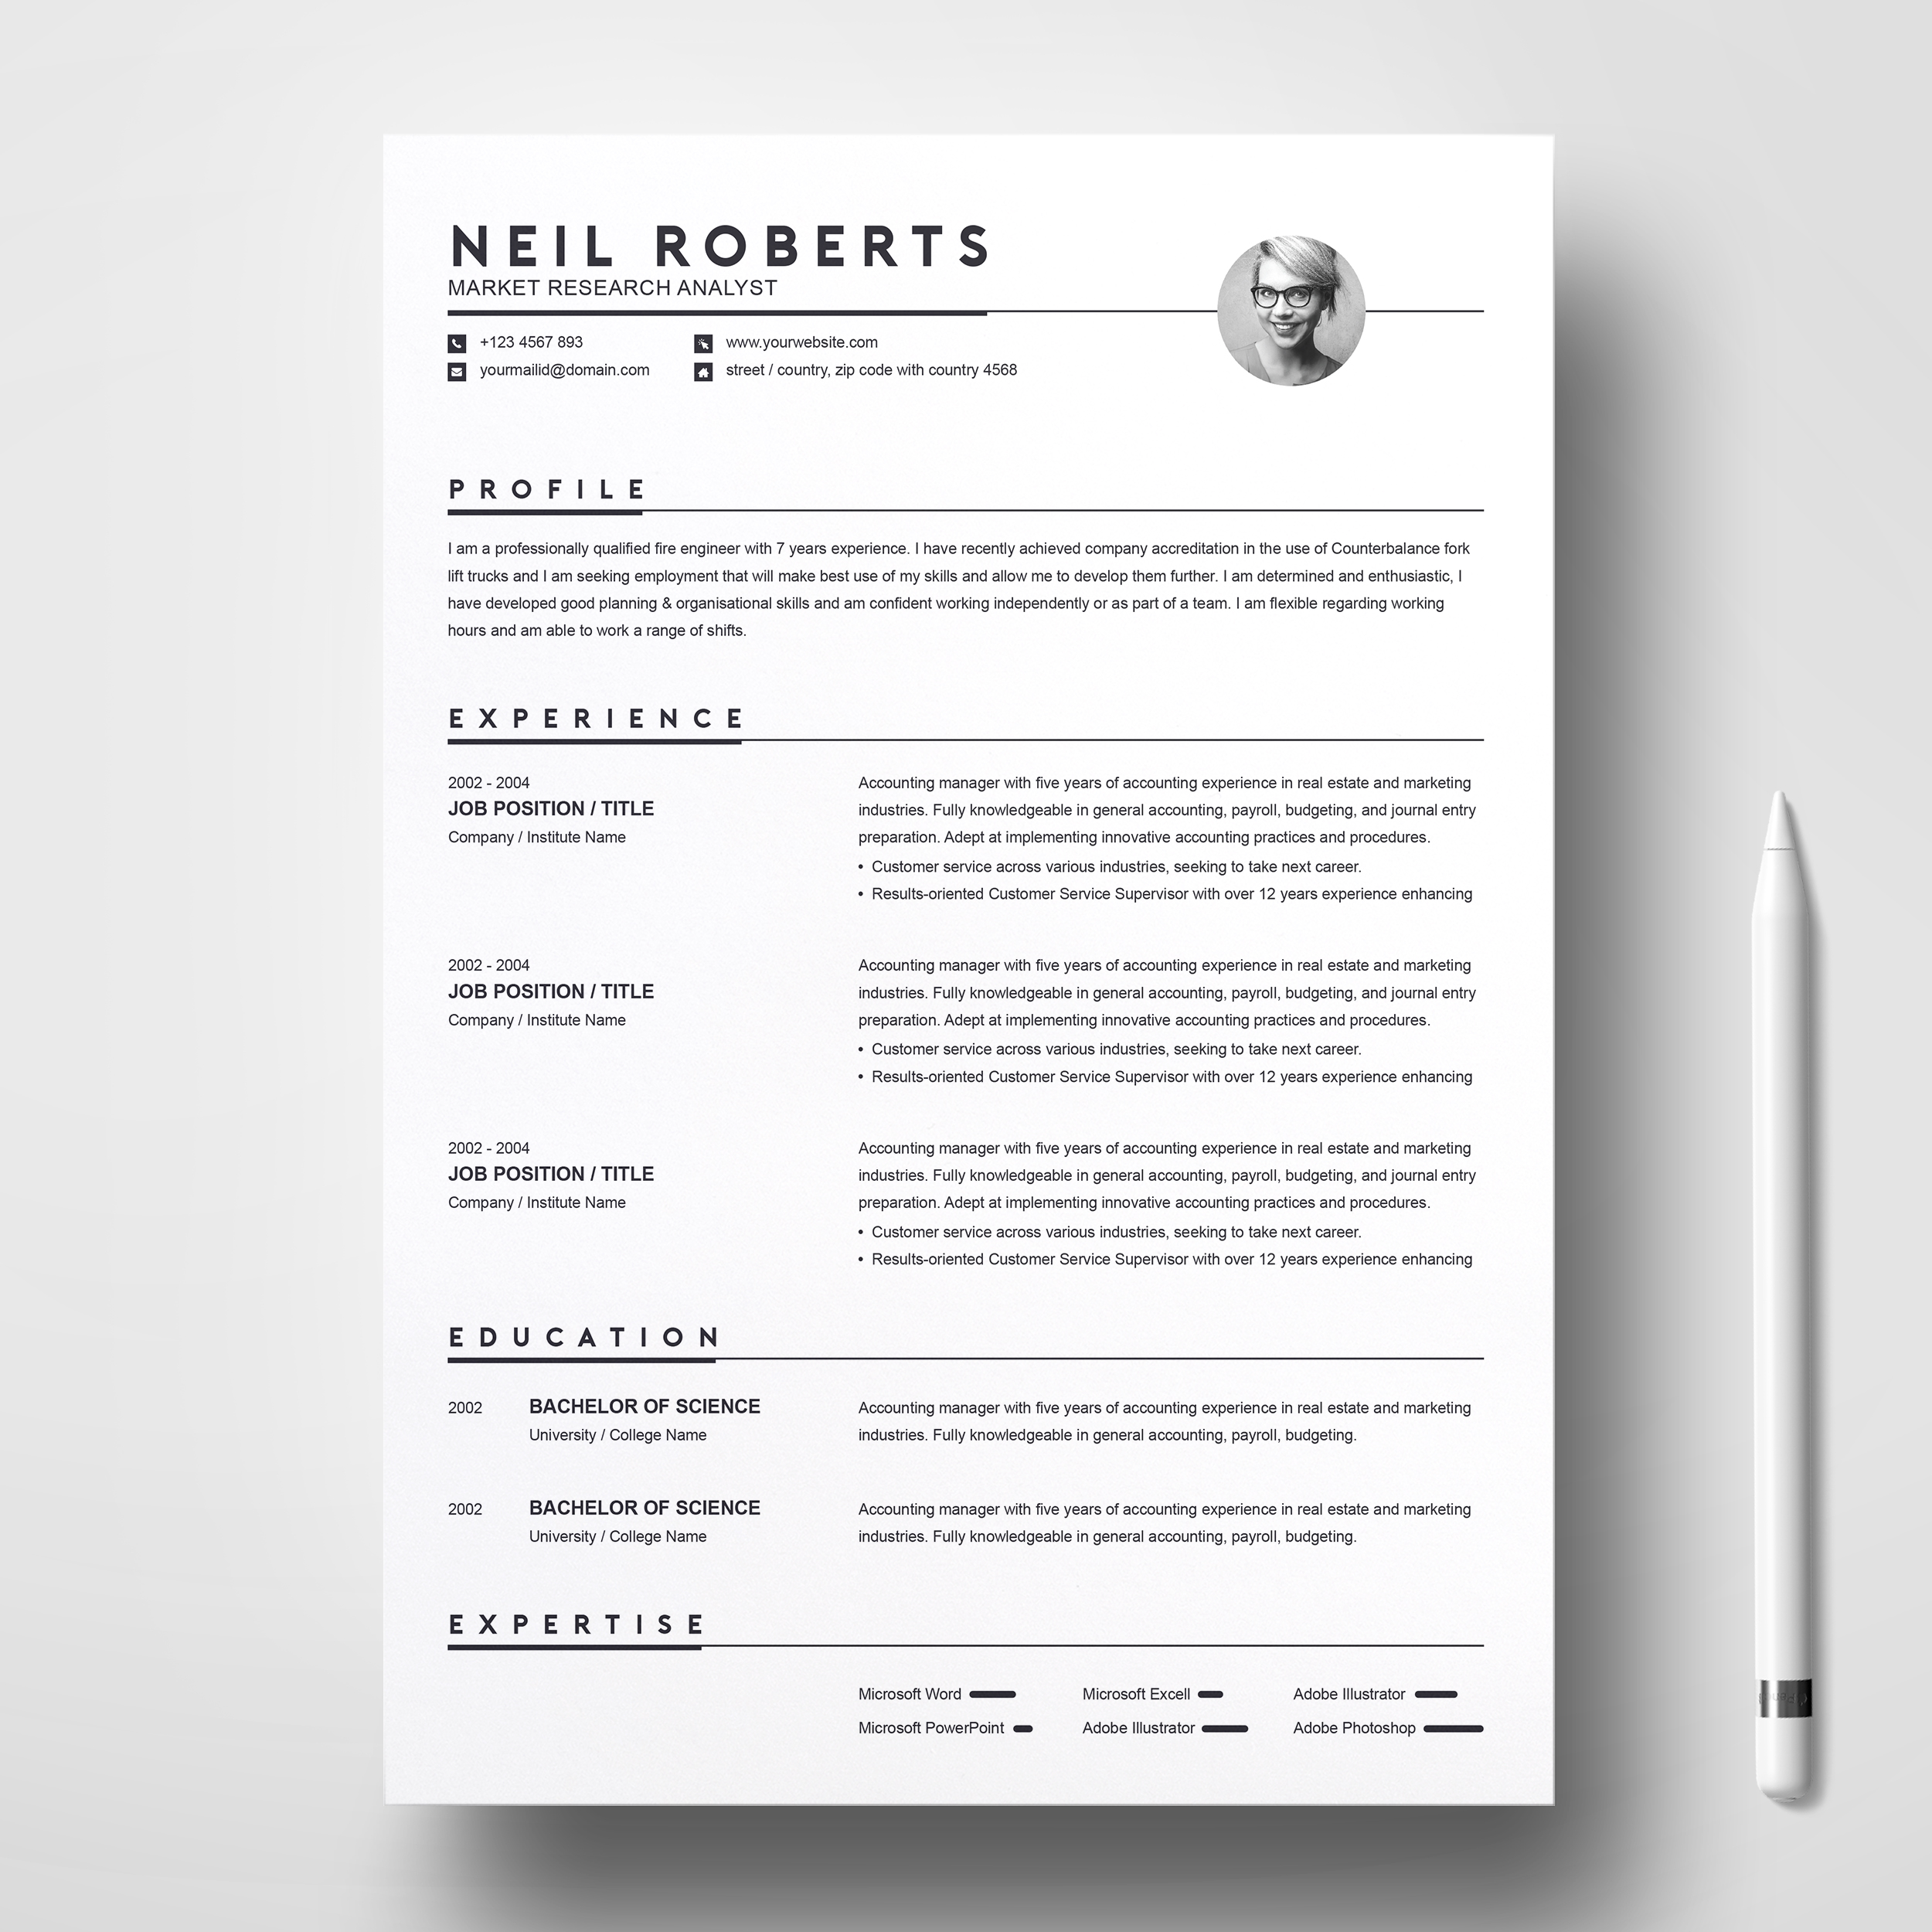 Word Resume / CV & Cover Letter